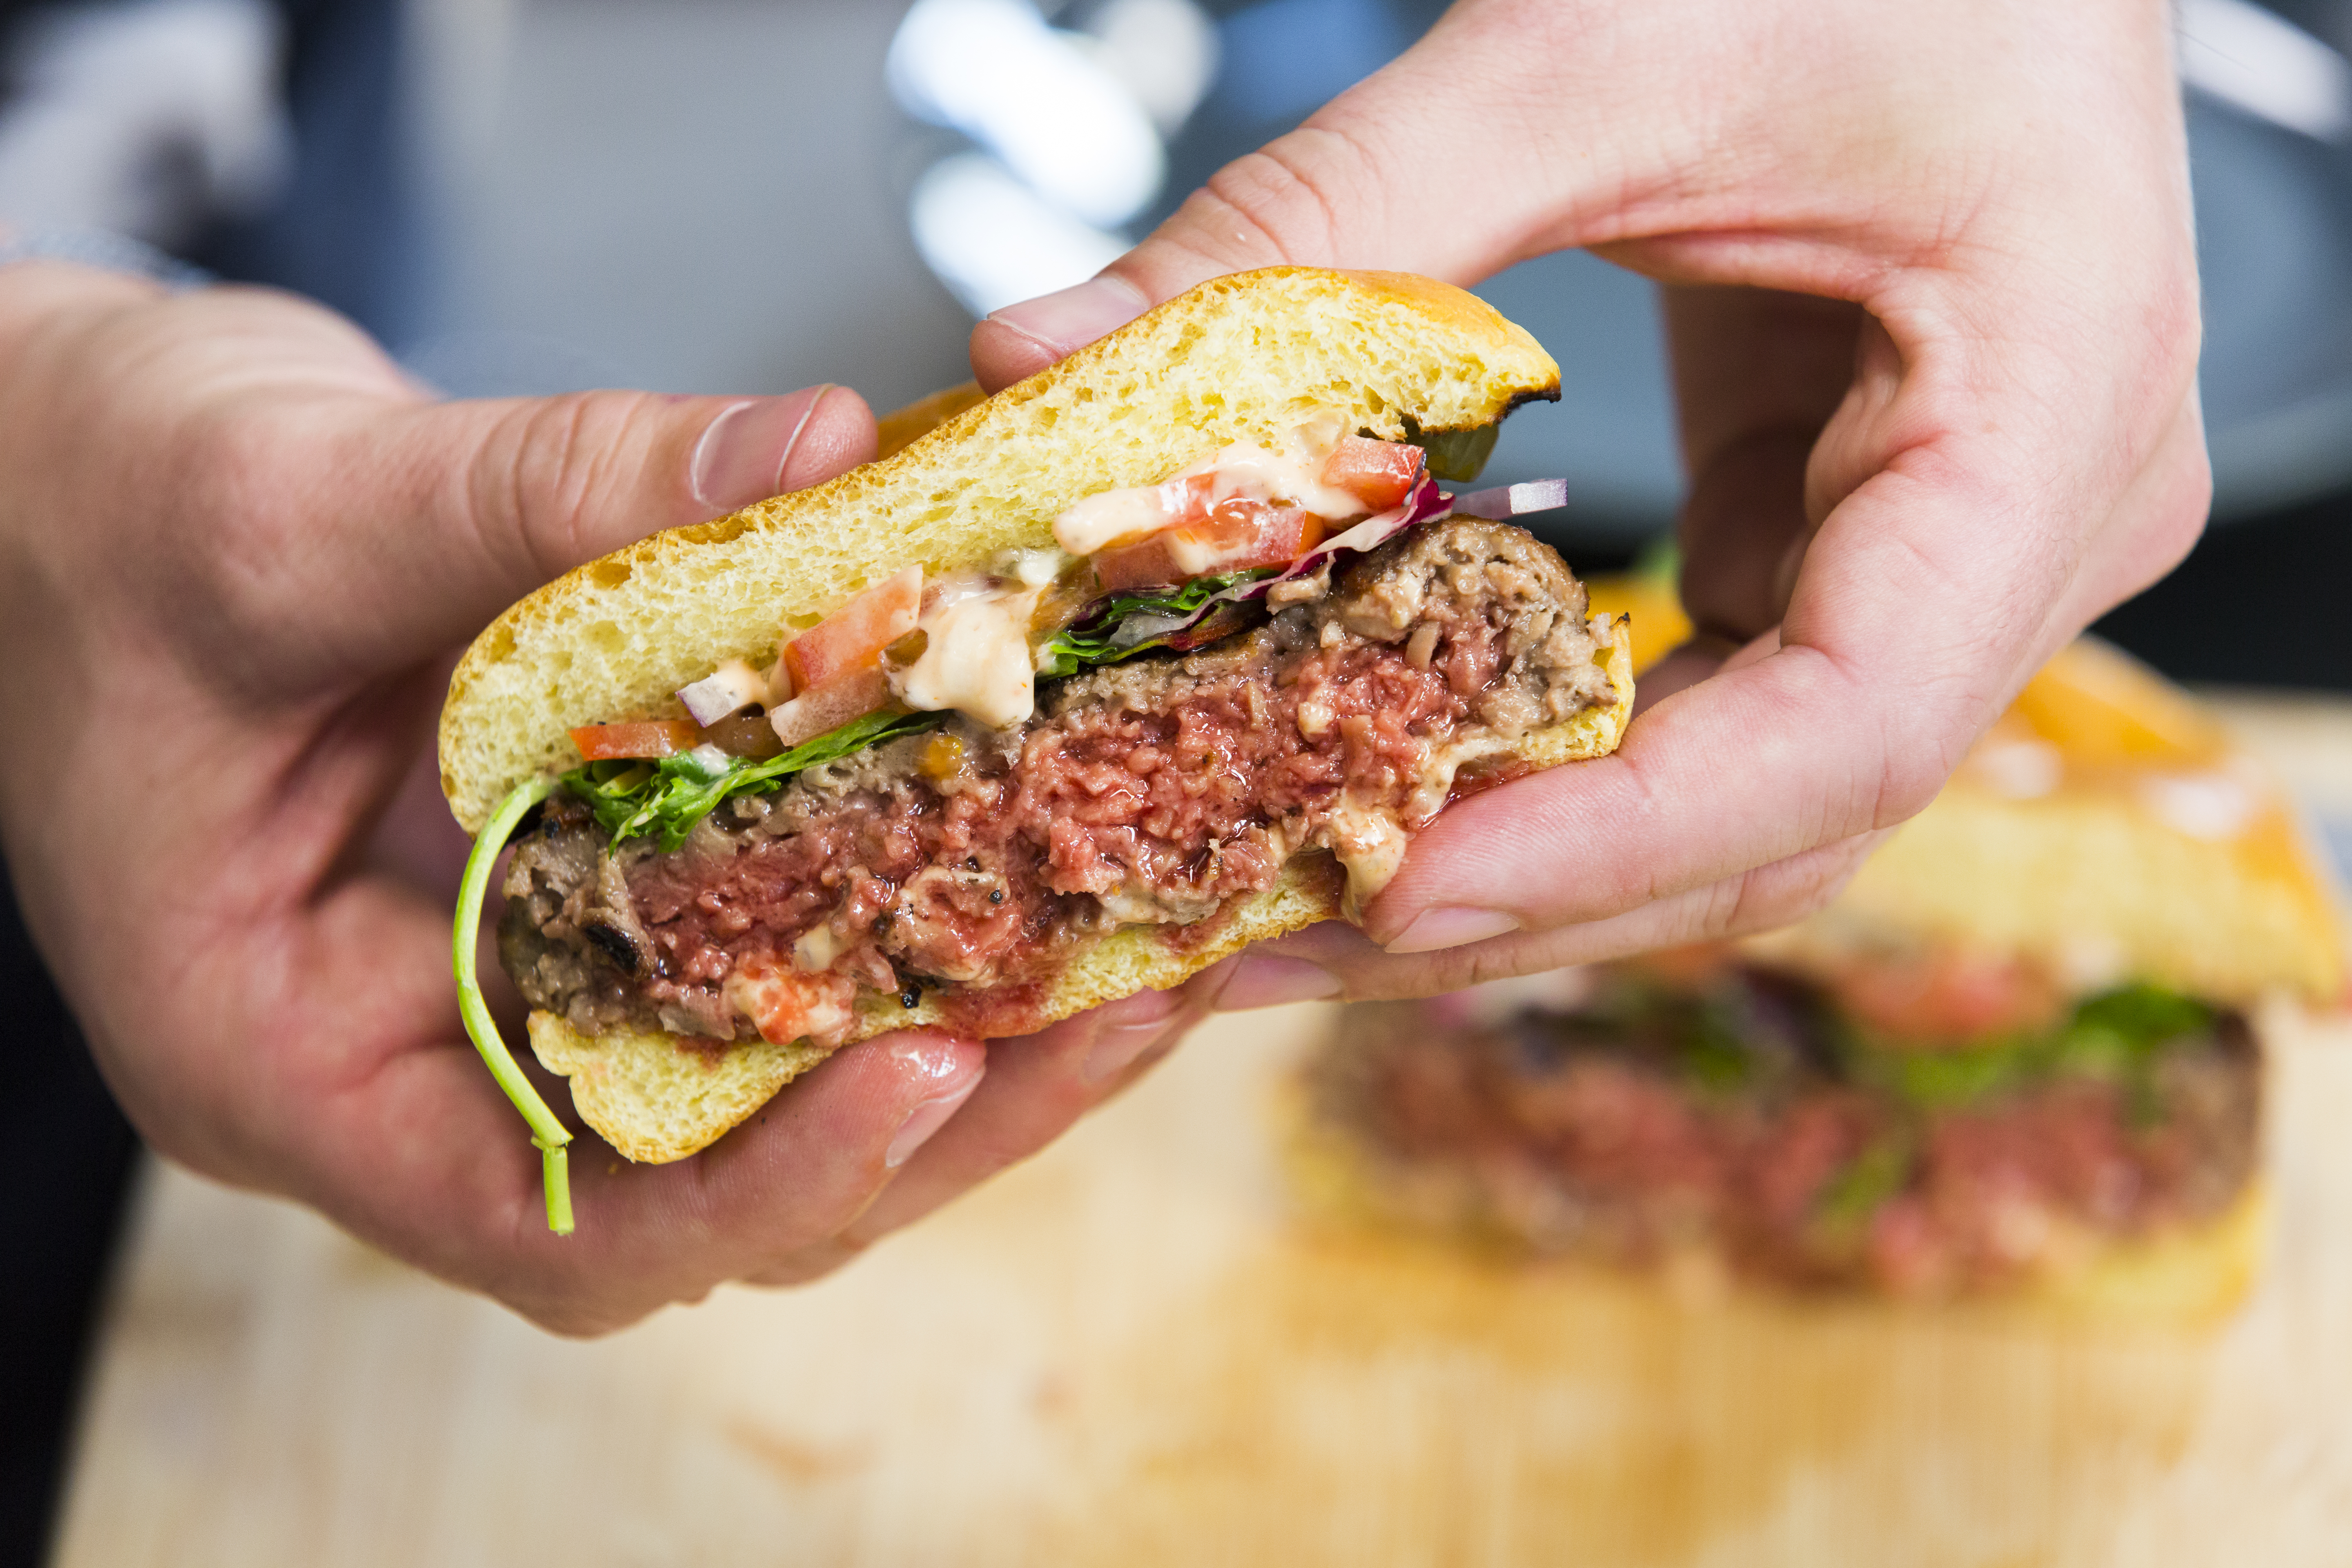 impossible burger cut half open and in a person's hands